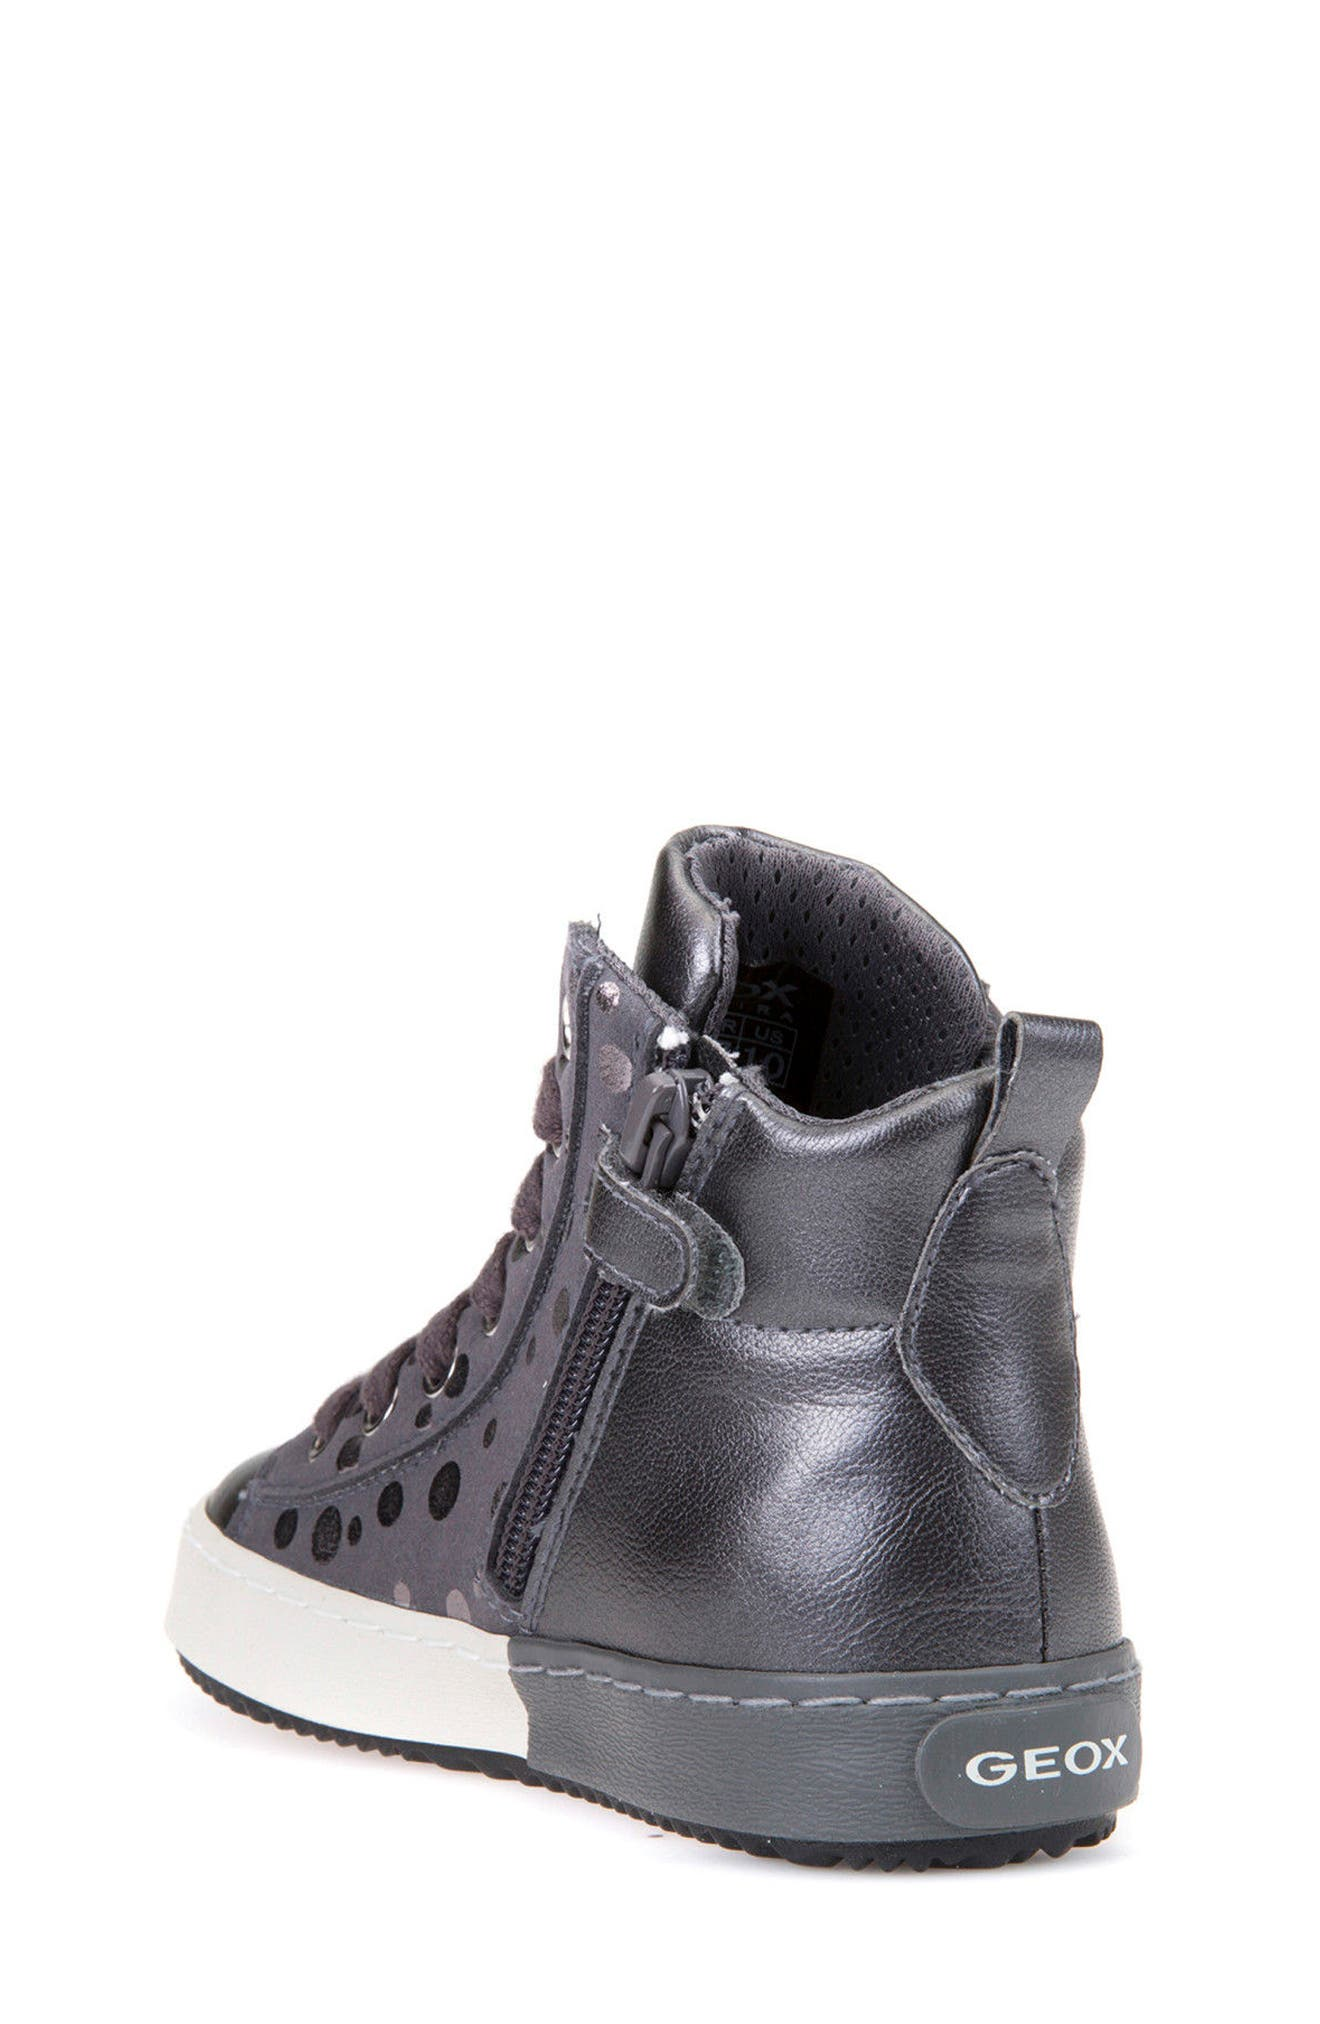 Alternate Image 2  - Geox Kalispera Girl Dotted High Top Sneaker (Toddler, Little Kid & Big Kid)